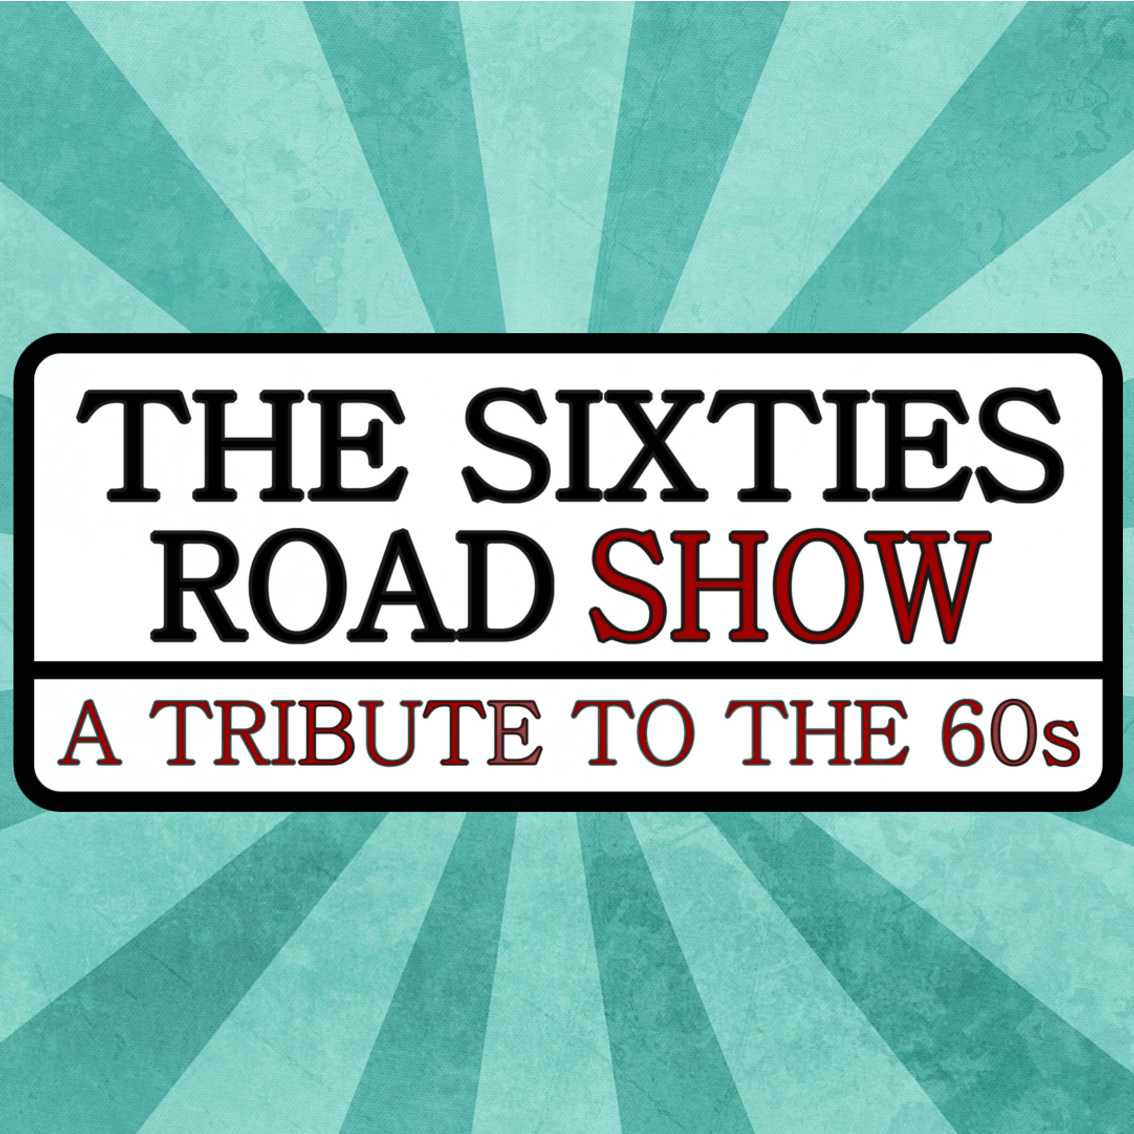 The Sixties Roadshow